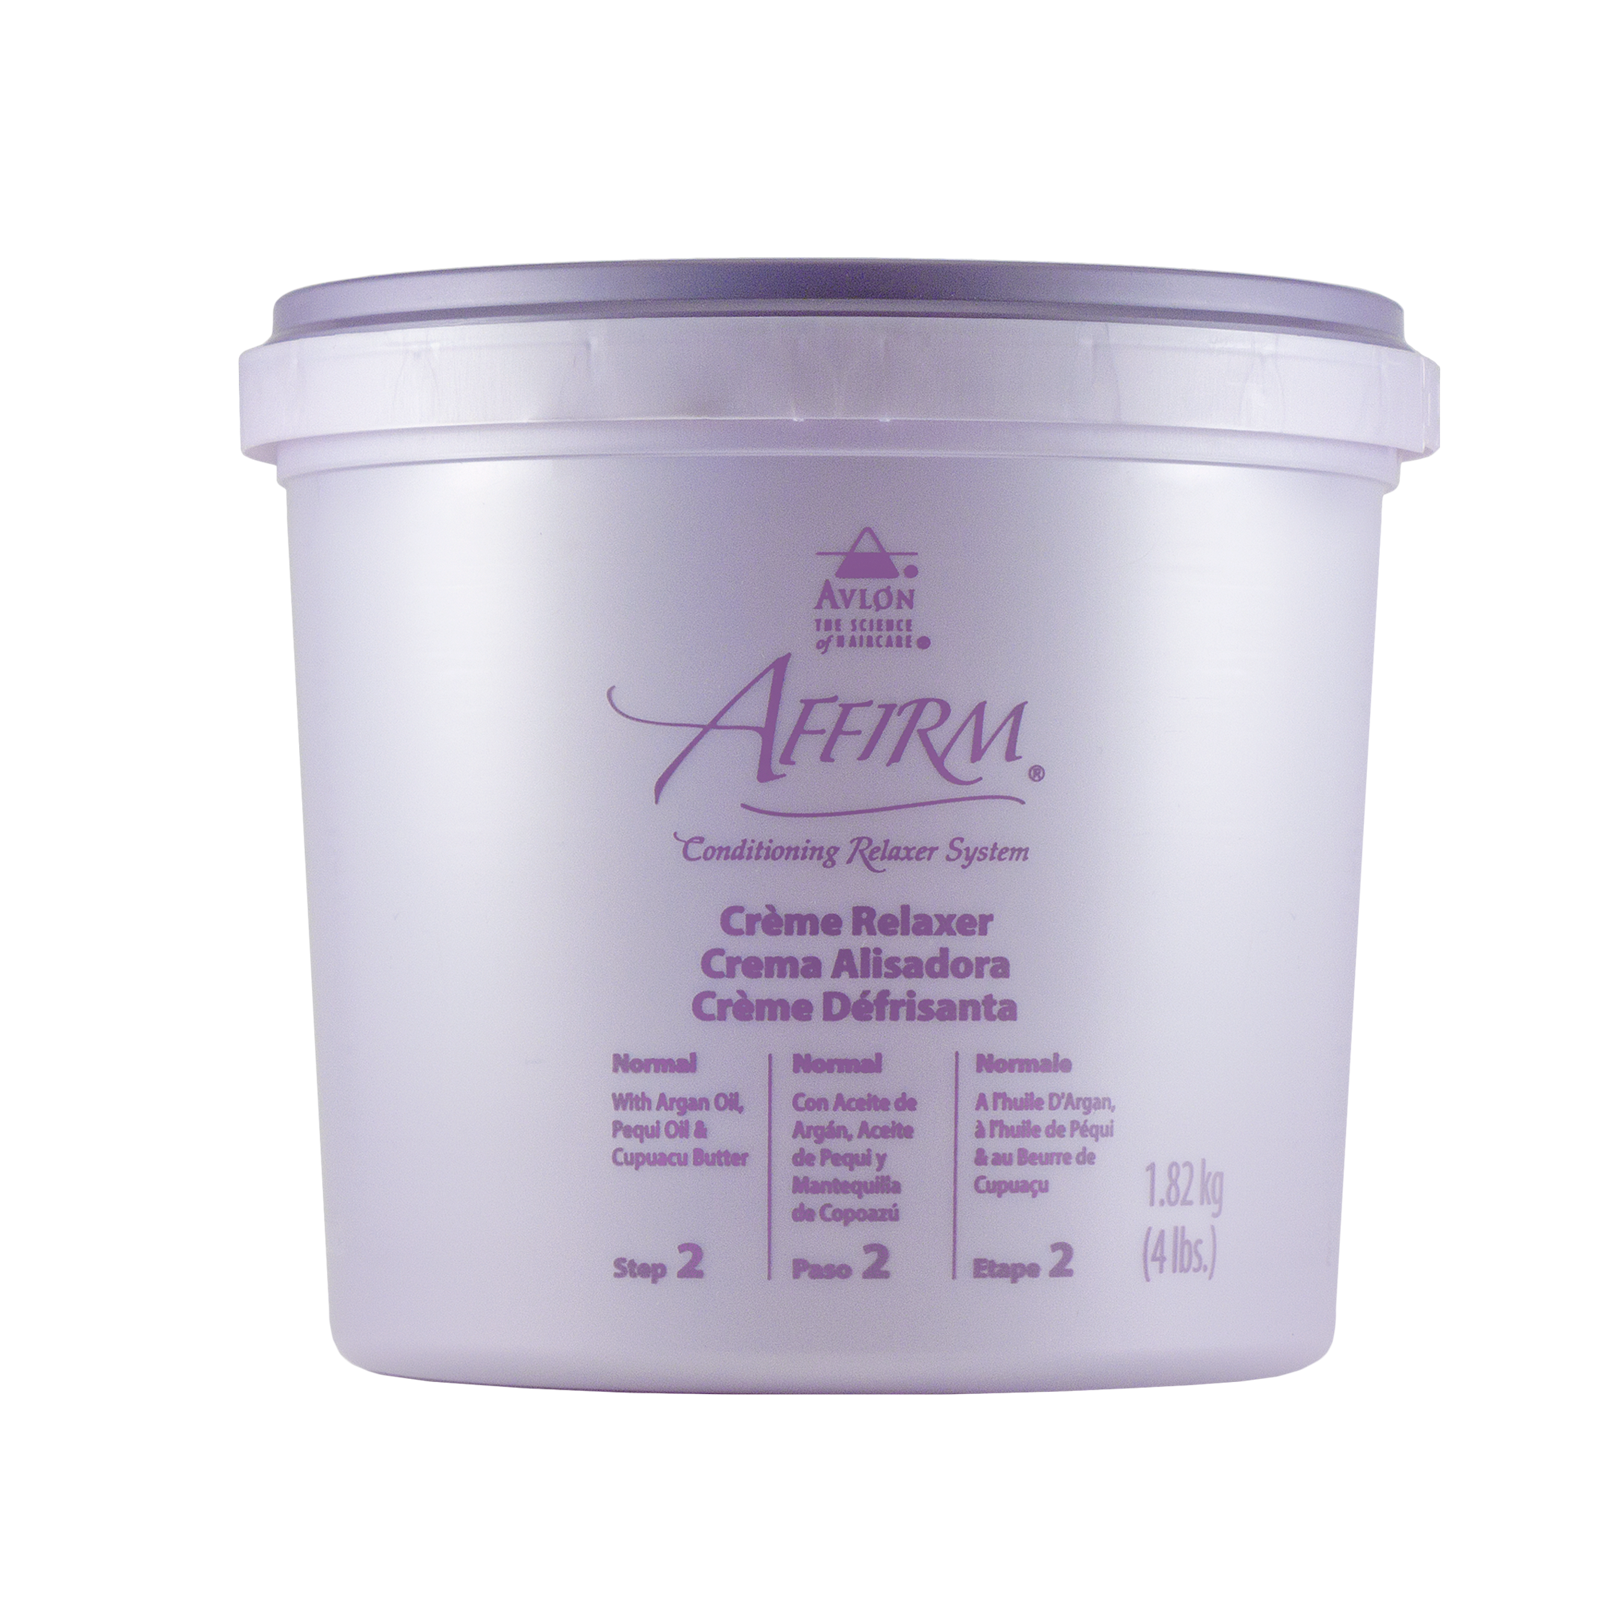 Affirm Creme Relaxer - Normal